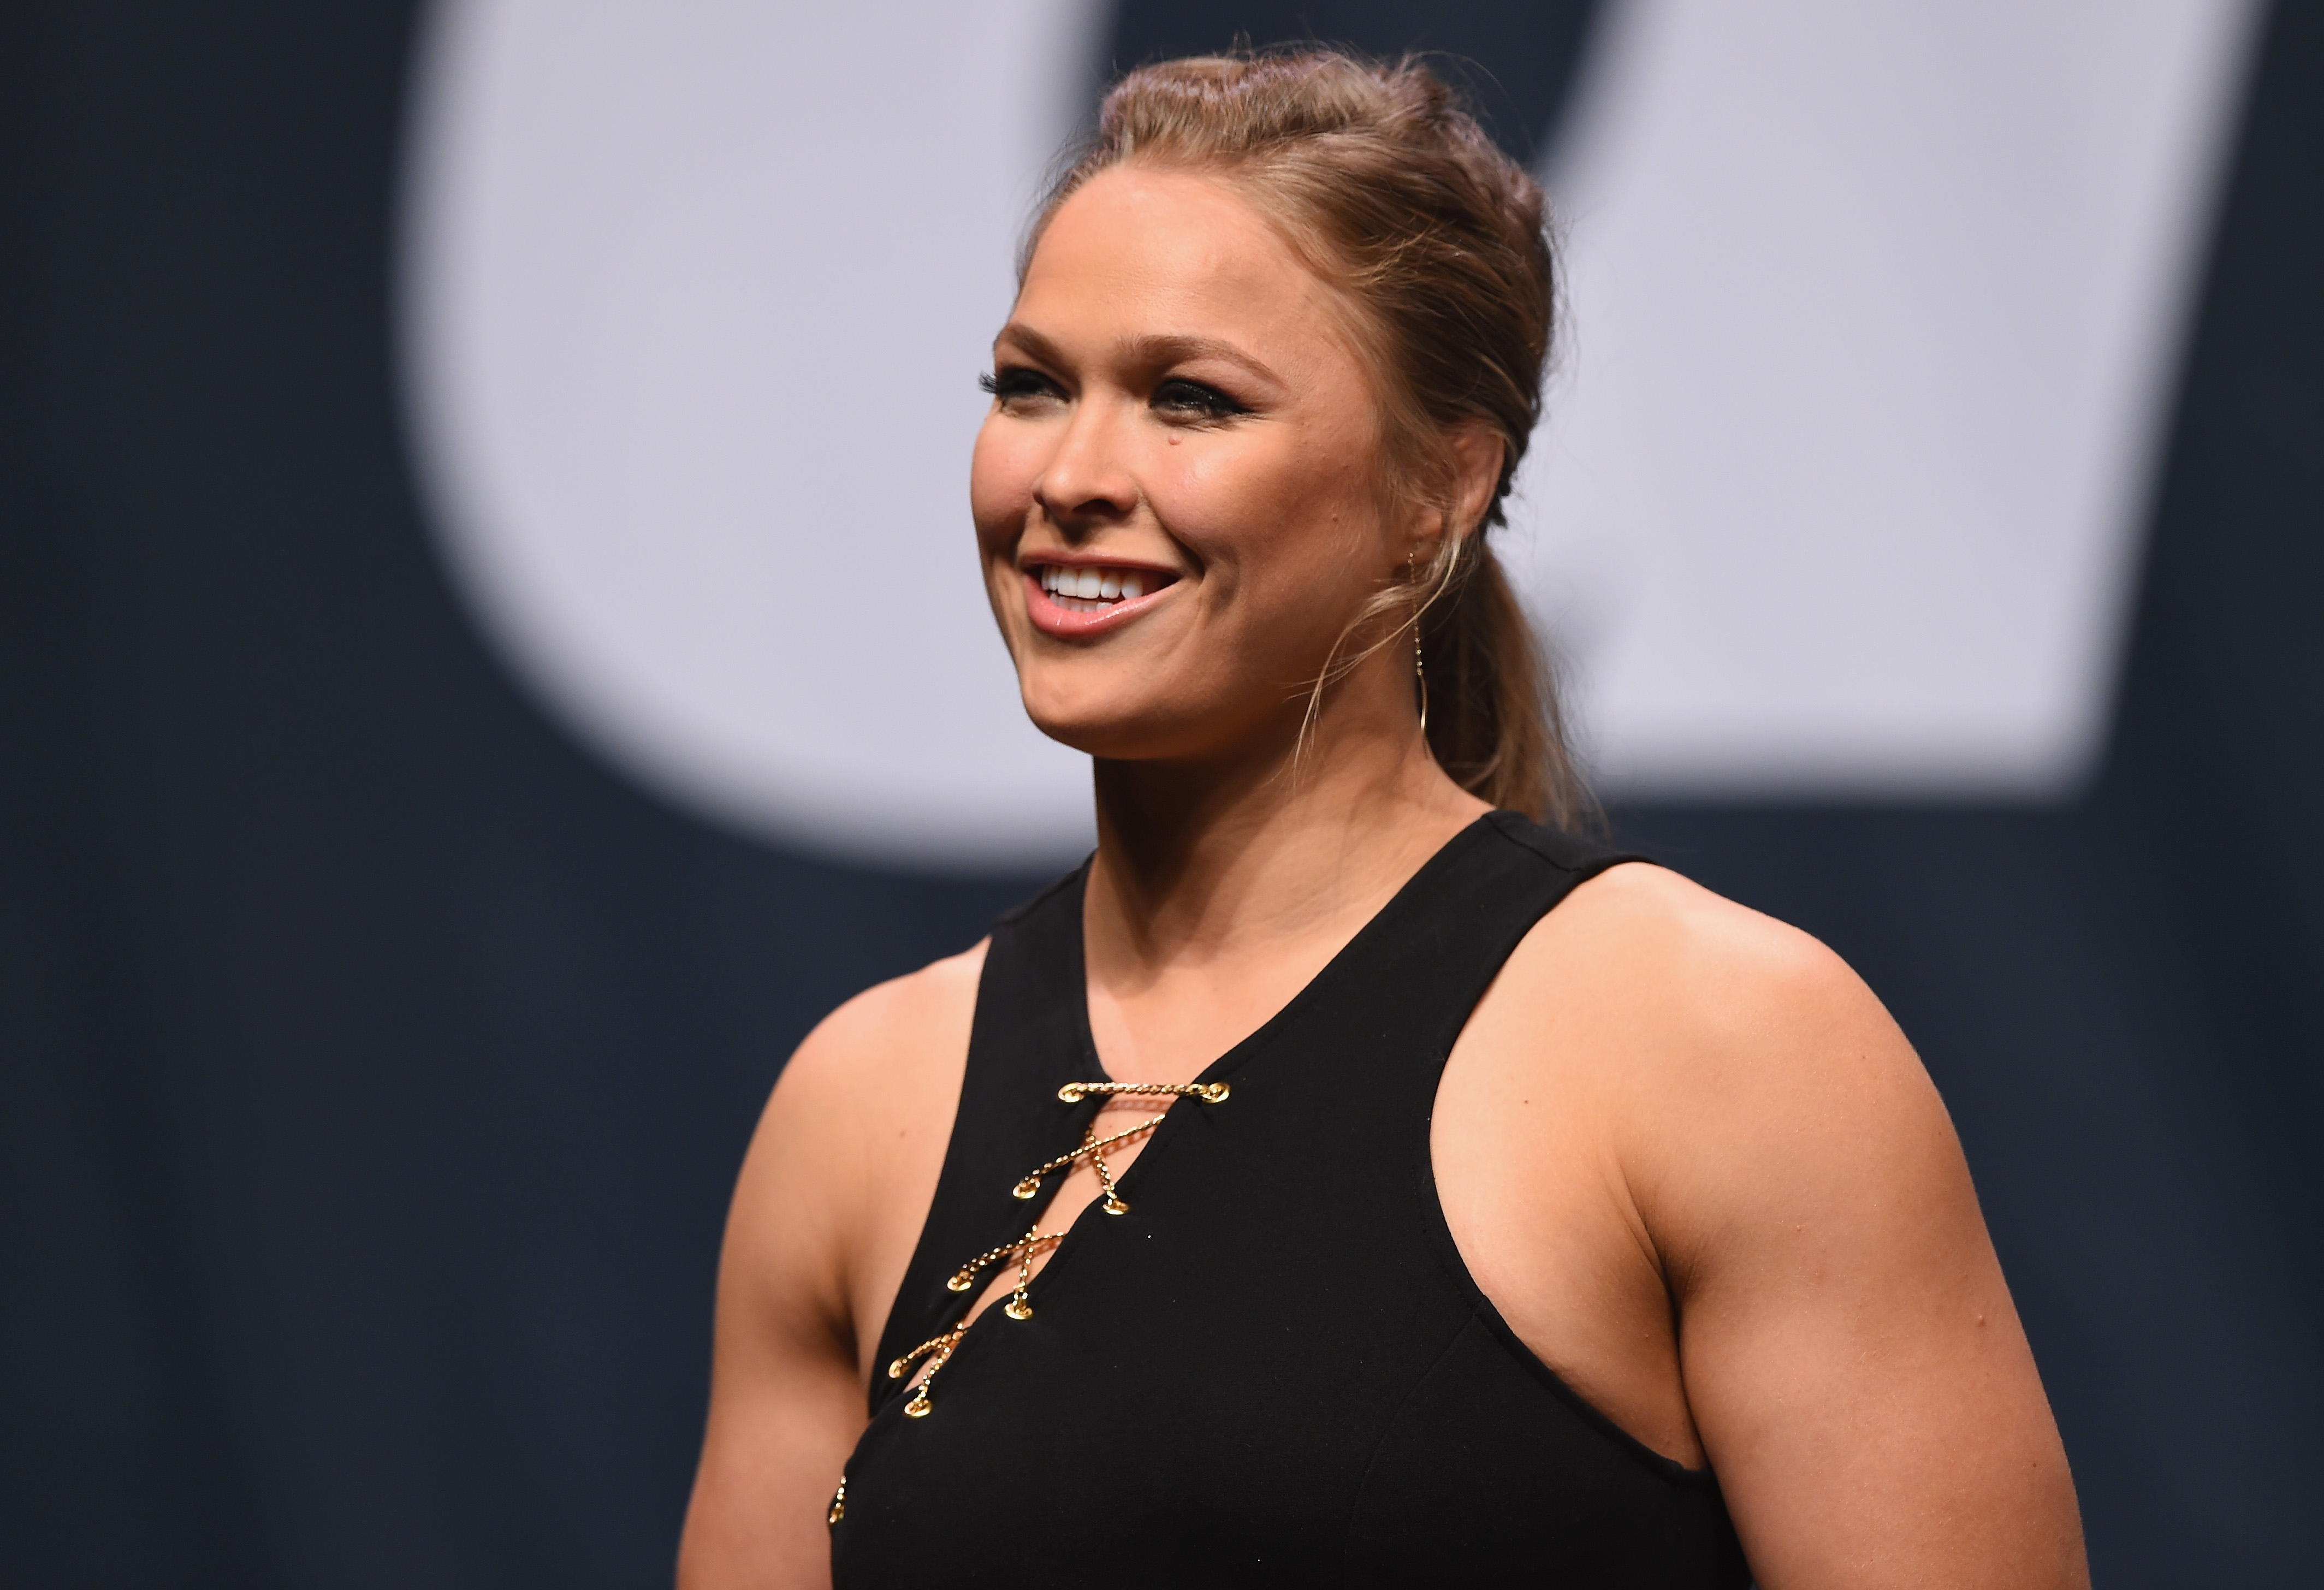 Ronda Rousey at the UFC's Go Big launch event in Las Vegas on Sept. 4, 2015.